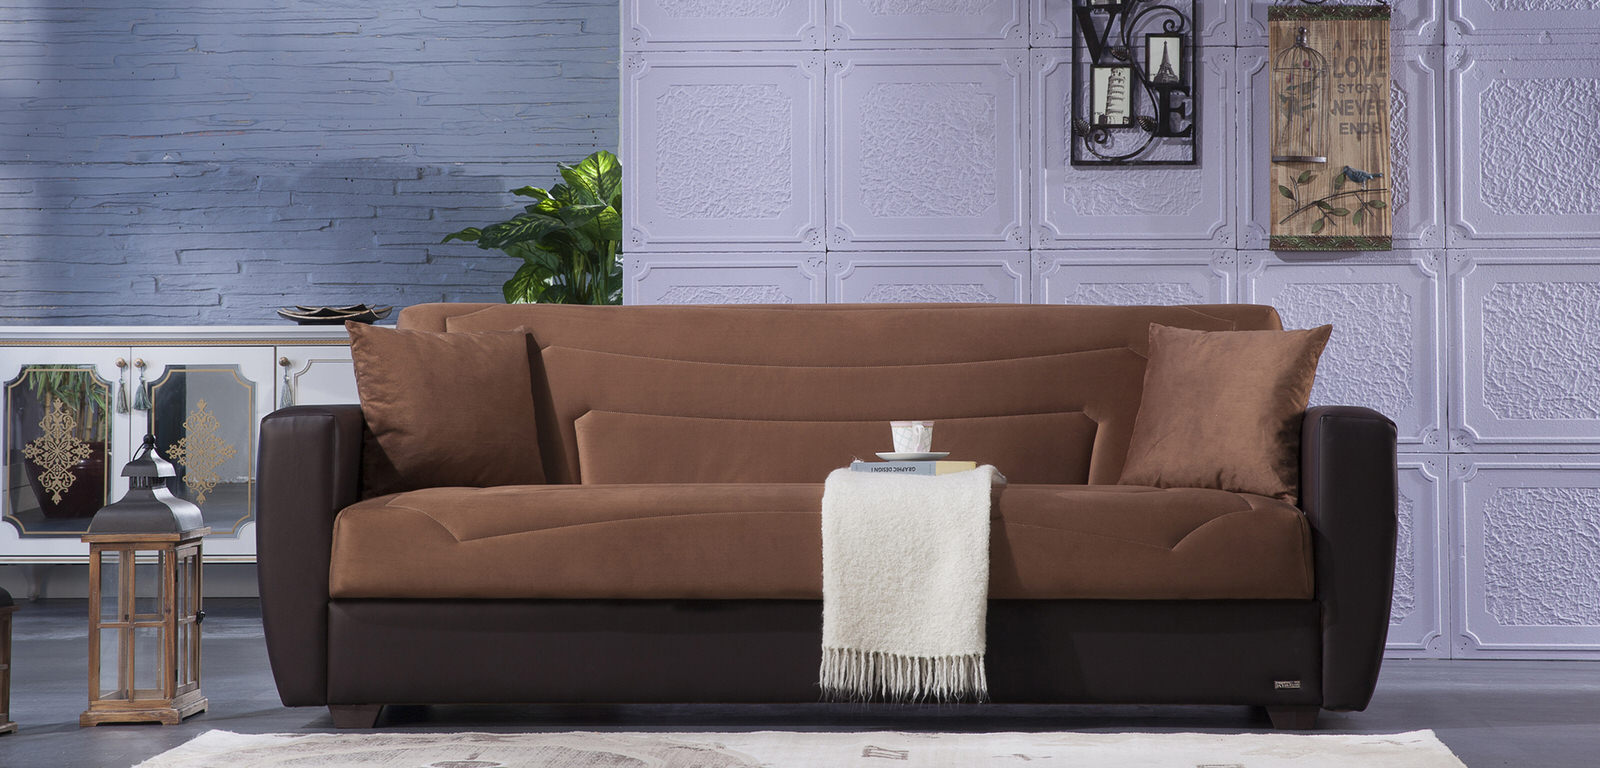 convertible sofa beds new york sectional leather sofas uk power rainbow brown bed by istikbal (sunset)